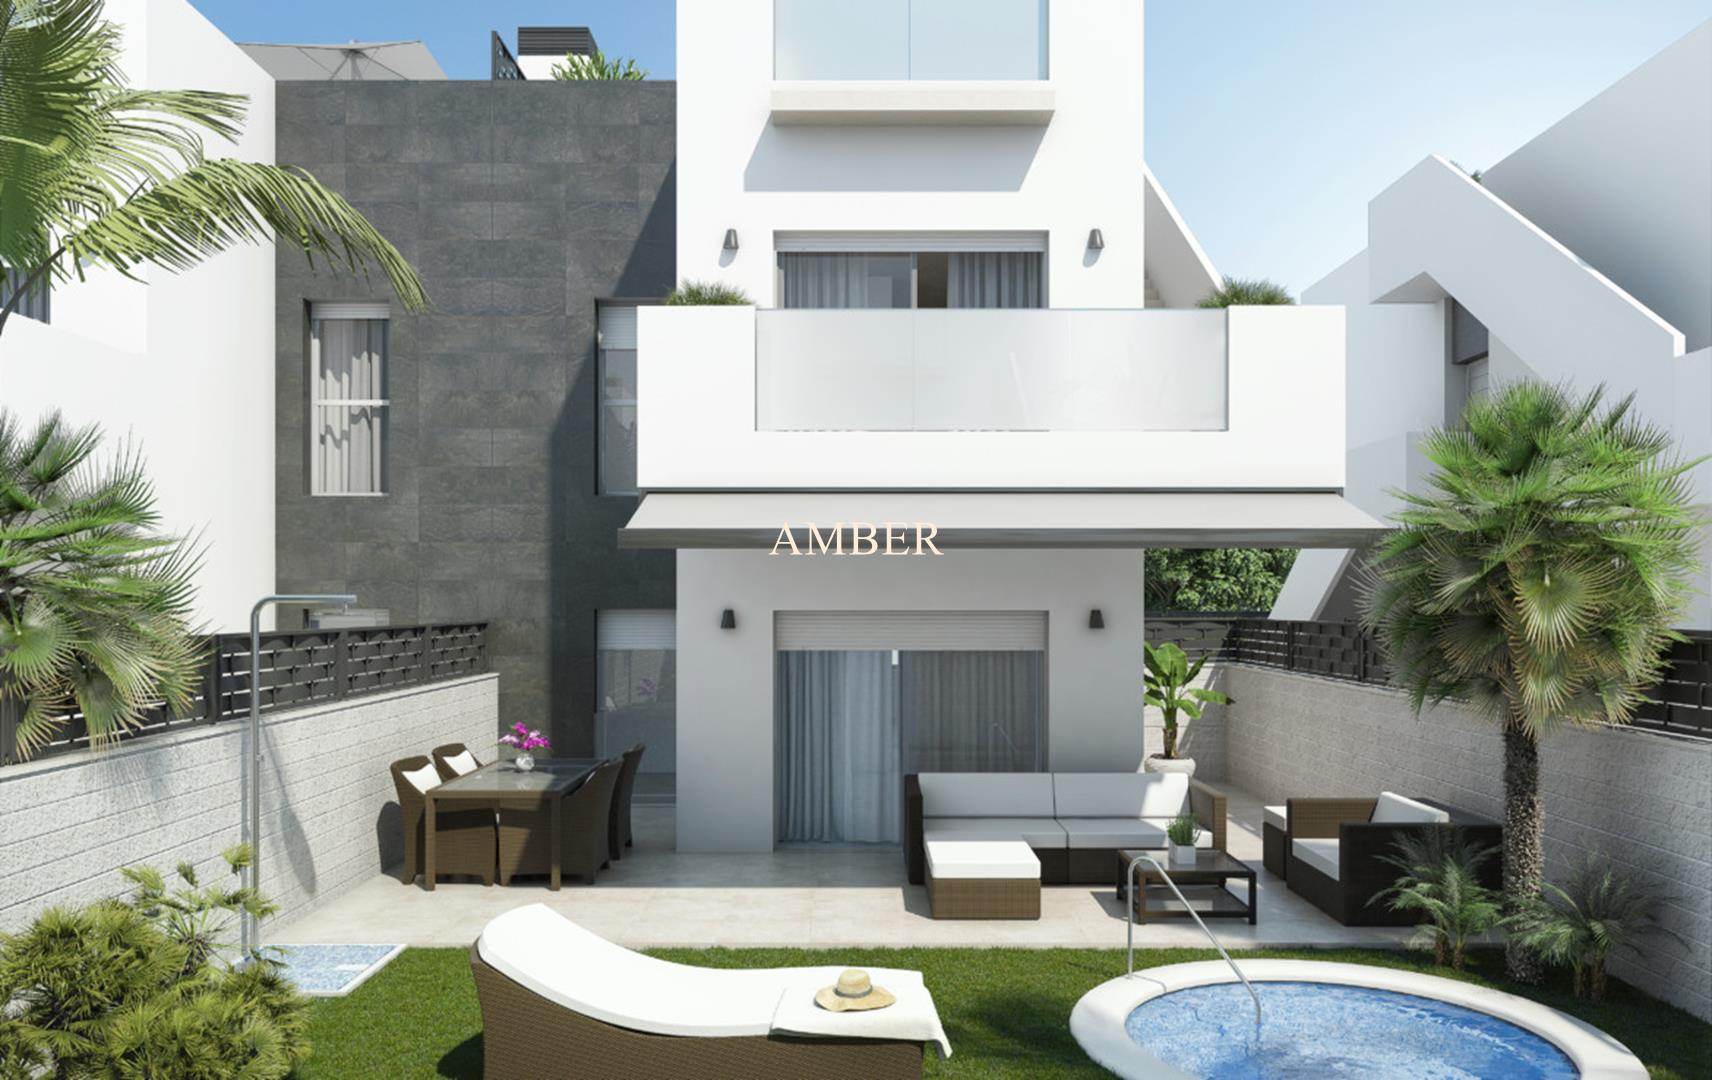 New houses for sale in residential complex with swimming pool, Ciudad Quesada